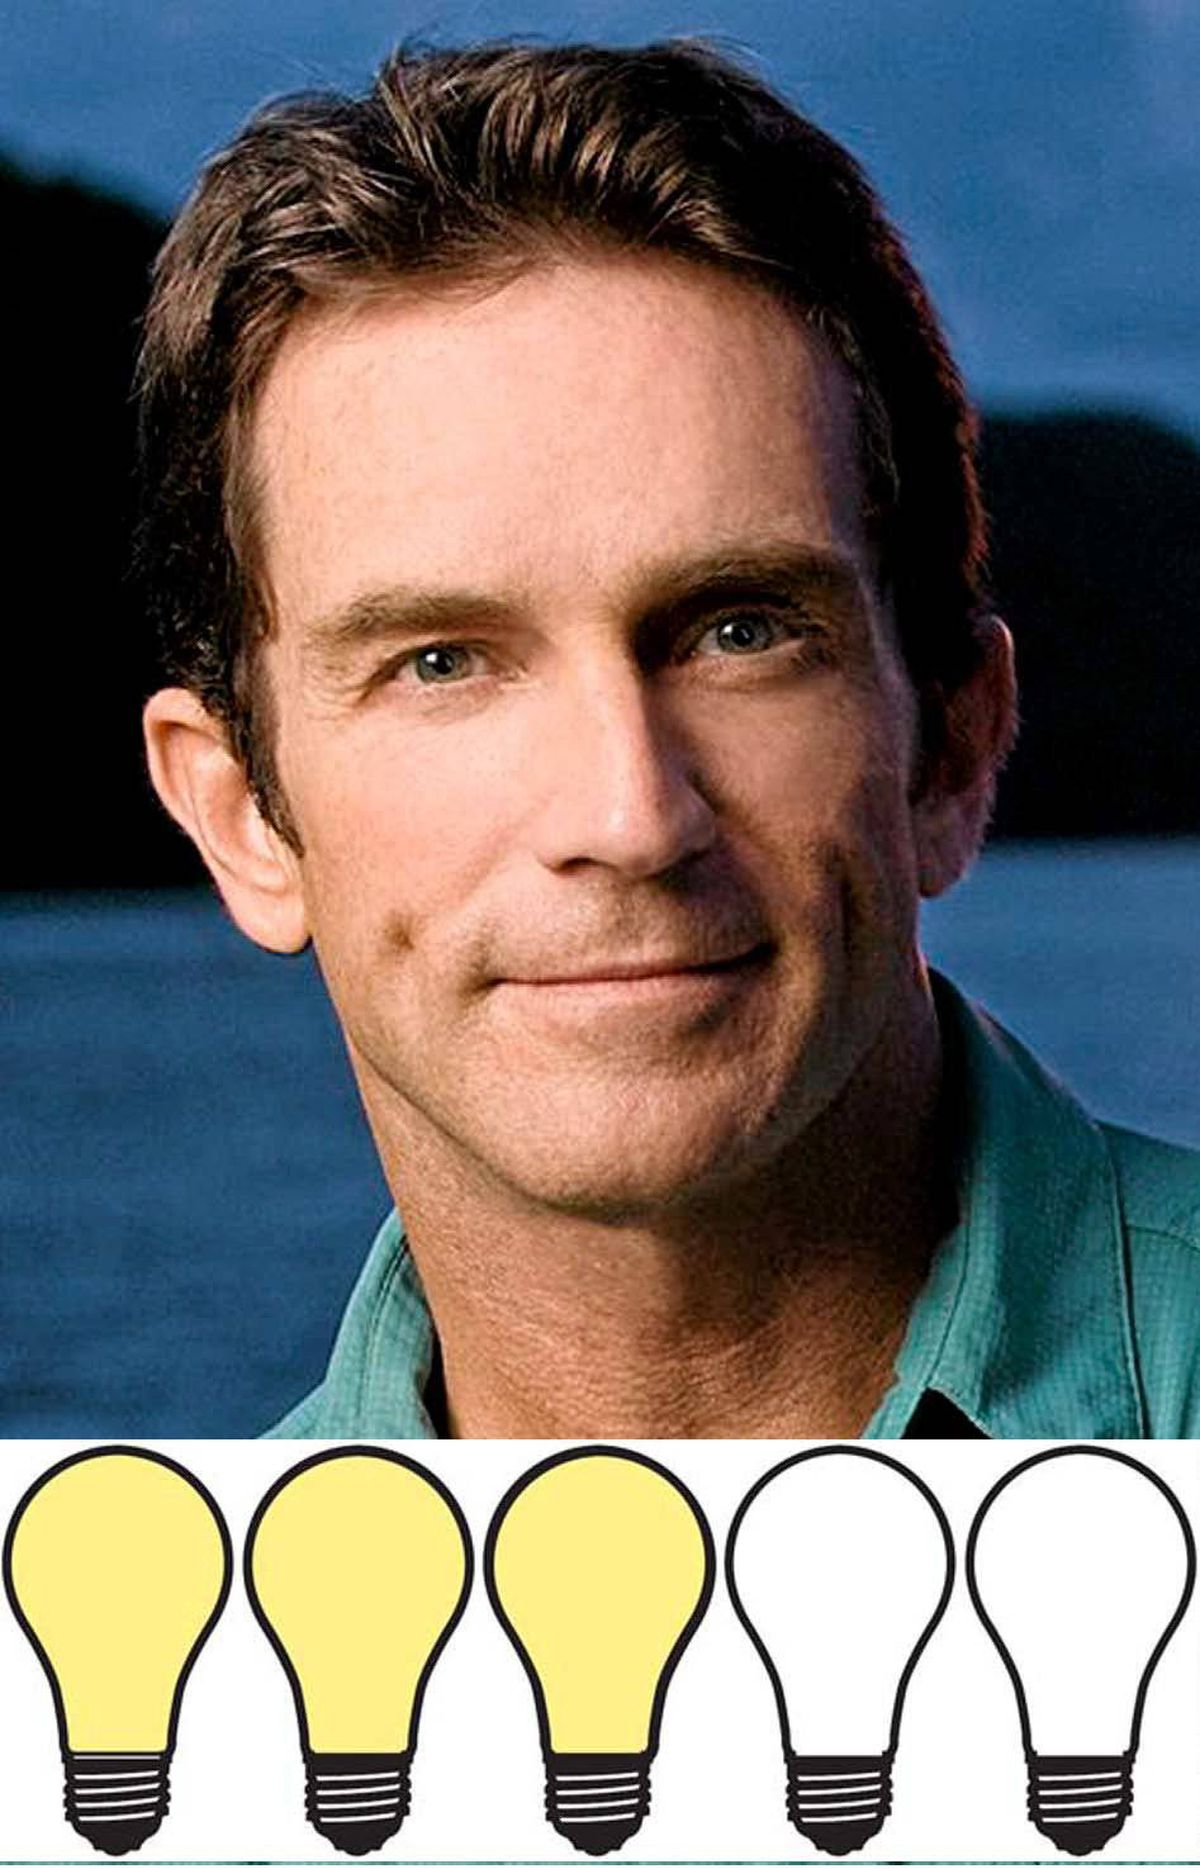 """JEFF PROBST: 60 watts Congratulations, Survivor host Jeff Probst. People magazine confirmed that you married Lisa Ann Russell in L.A. on Monday . We're sure it was lovely. And it got some great press for you. It's always nice to get a plug for your self-titled talk show that's making its debut next year, right? (You're welcome!) And while we hope you two enjoy marital bliss for ever and ever, let's face it, you've got the best break-up line ever waiting in the bag whenever you need to pull it out. """"Lisa, I'm sorry. But you've been voted off the island. The island of our marriage!"""" It would be worth you two splitting up just to hear you say that."""